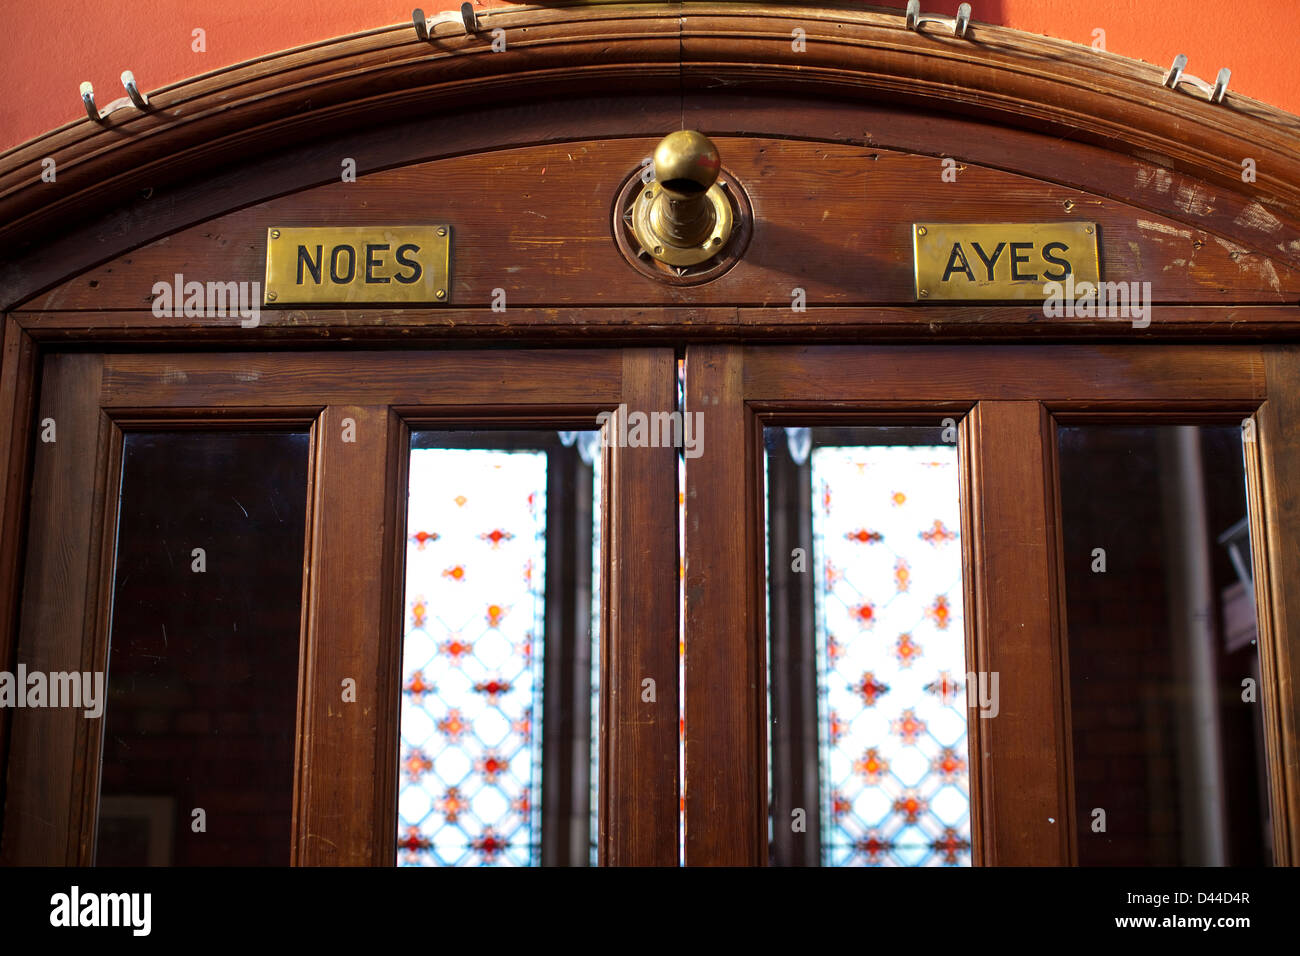 Doors marking \u0027Ayes\u0027 and \u0027Noes\u0027 where the audience vote at The Oxford Union Society formal Debating Chamber Frewin Court Oxford & Doors marking \u0027Ayes\u0027 and \u0027Noes\u0027 where the audience vote at The ...